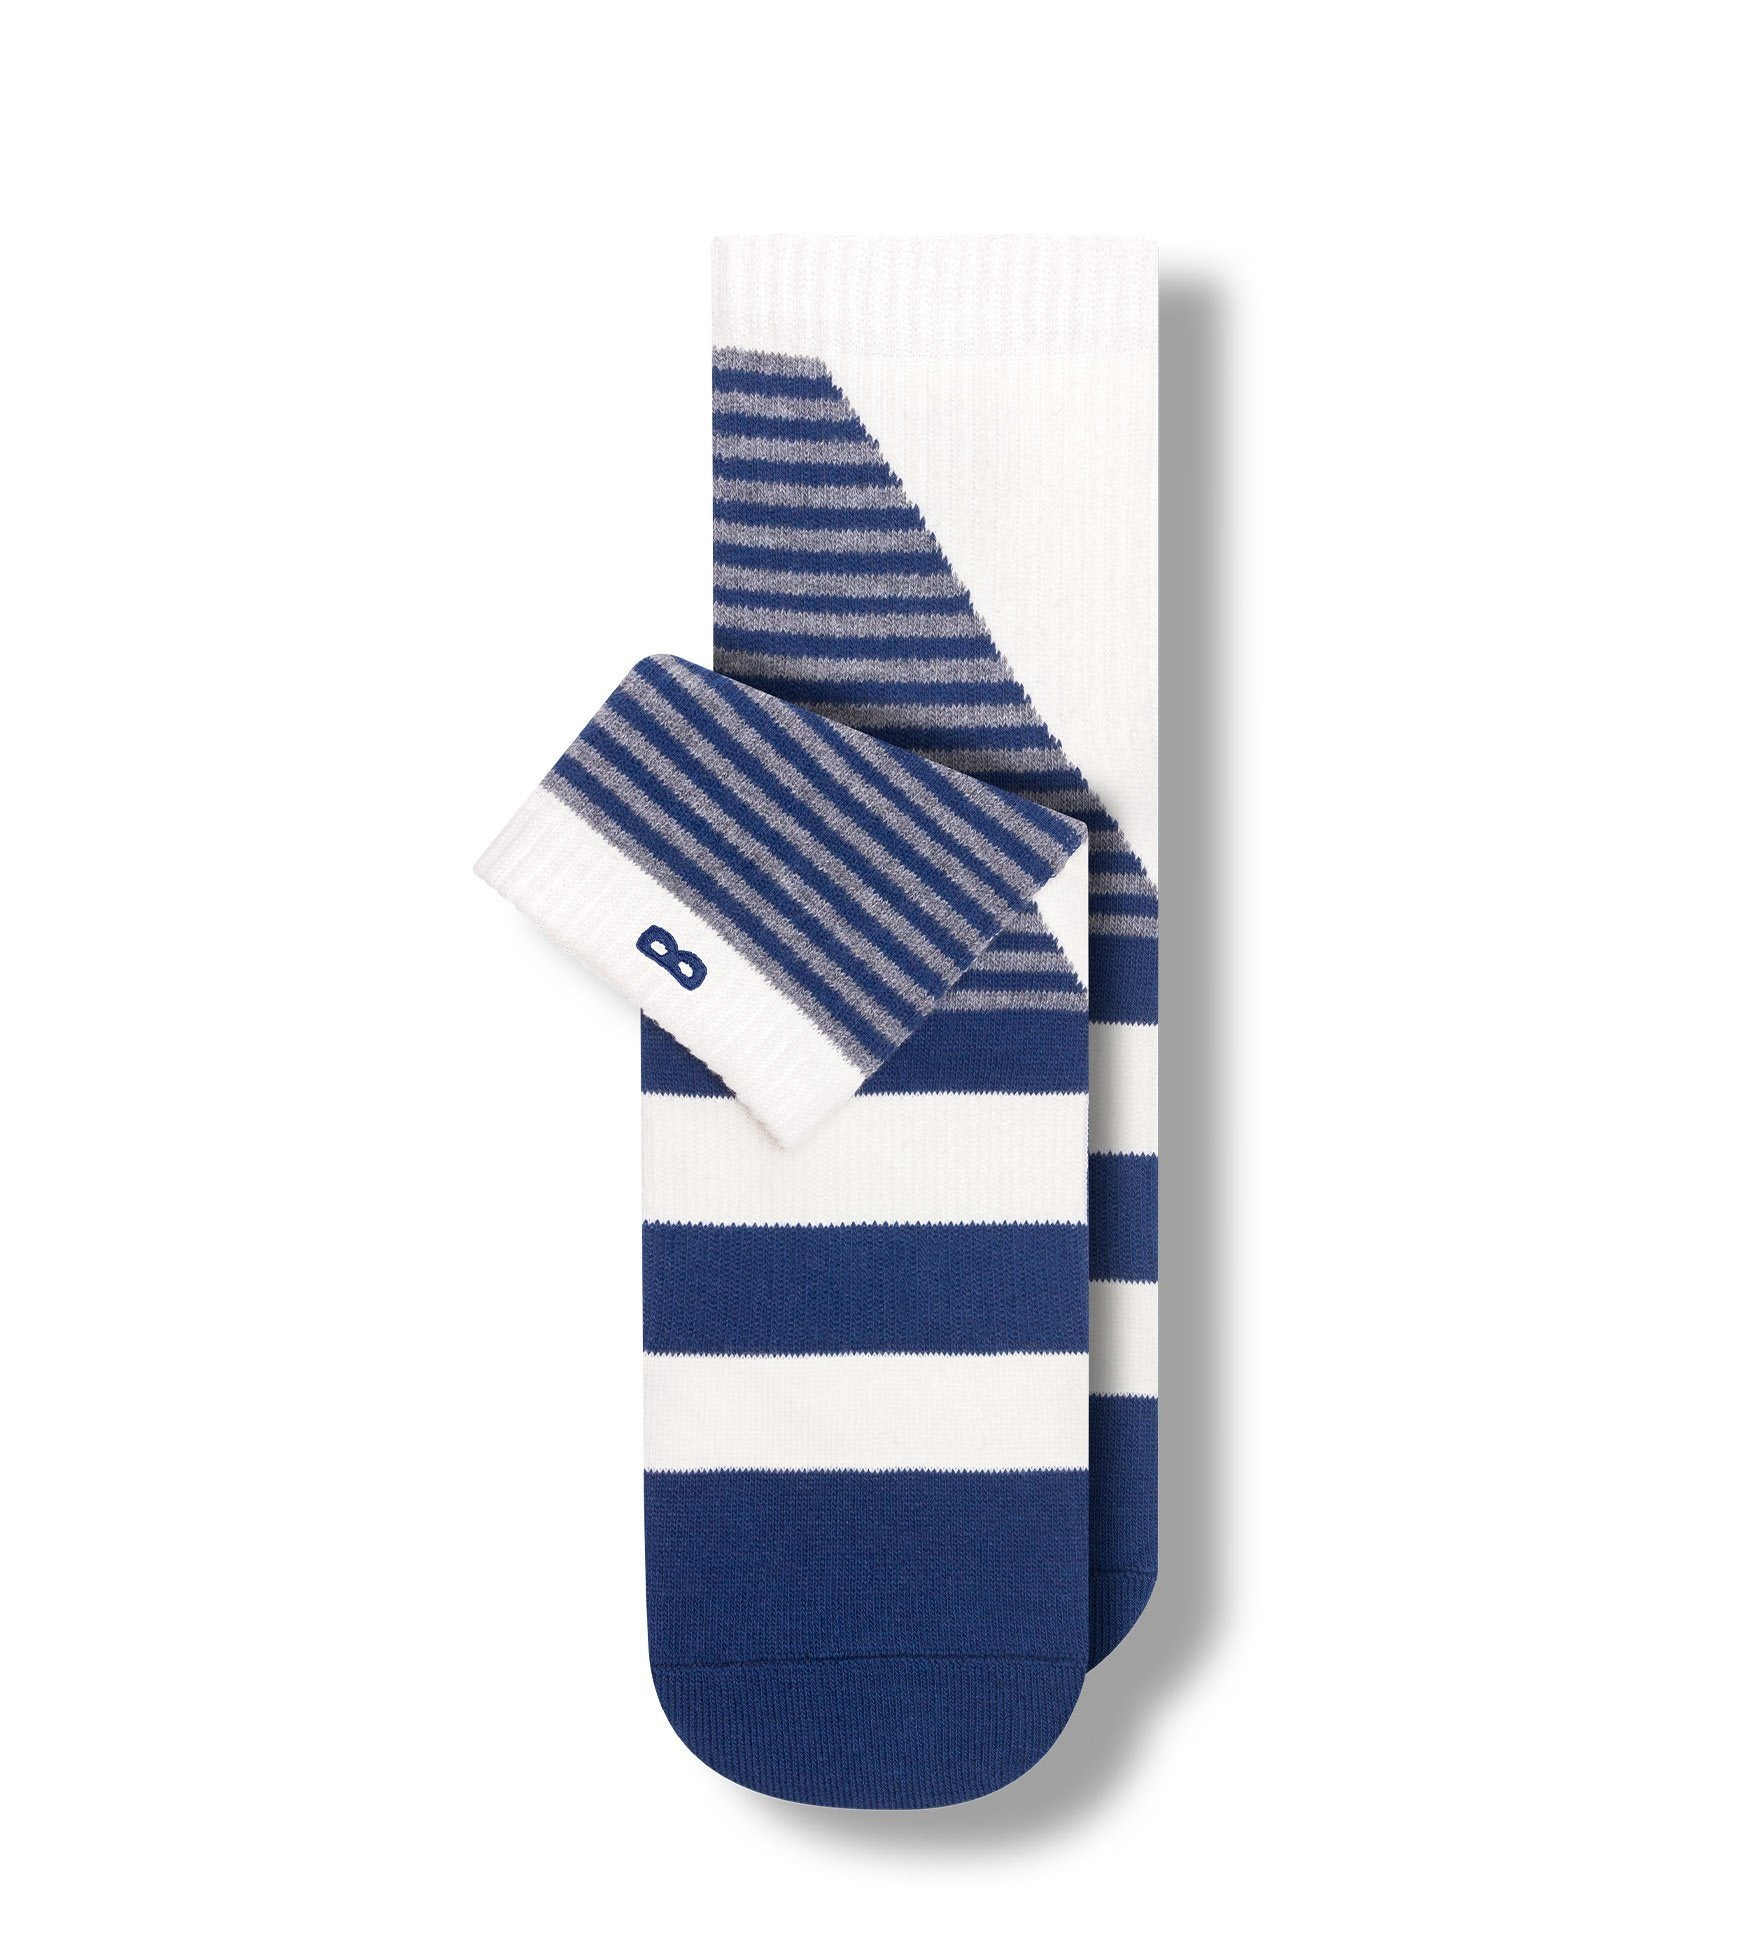 Coach Ernie Men's Cushion Ankle Socks